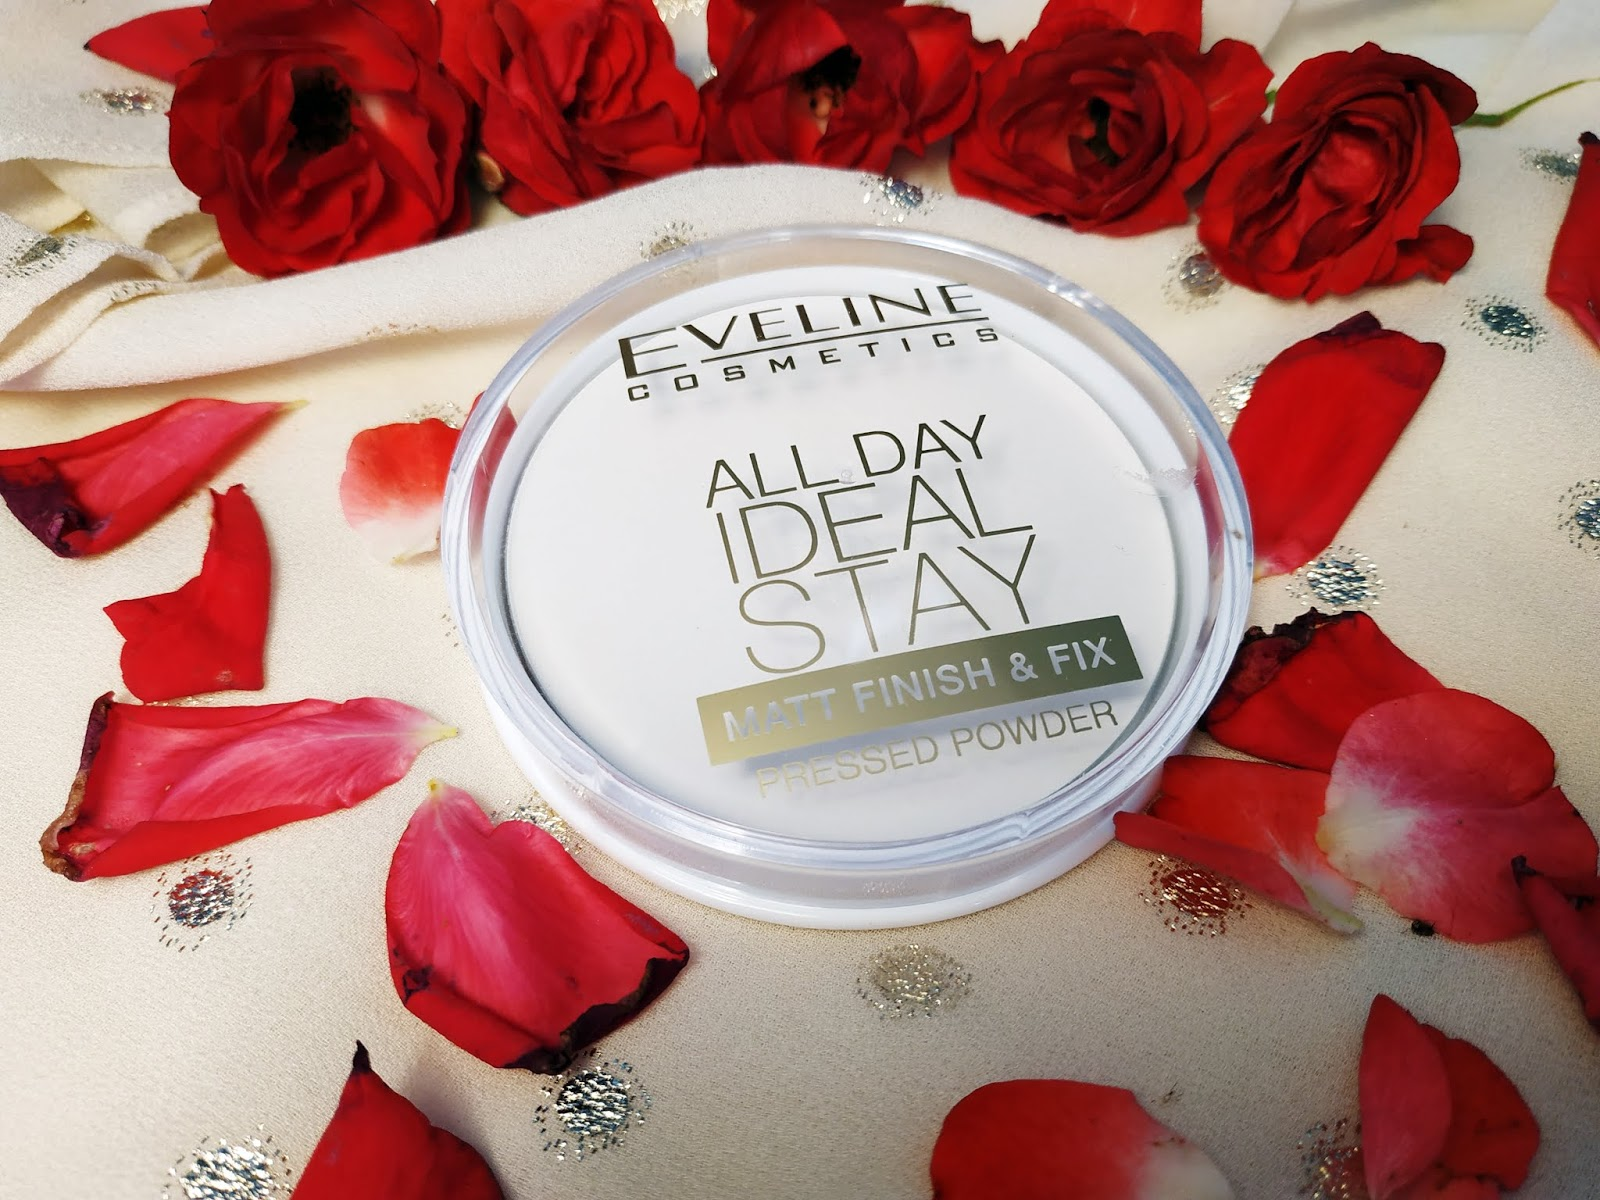 Opinia Eveline All Day Ideal Stay, matujący puder od Eveline